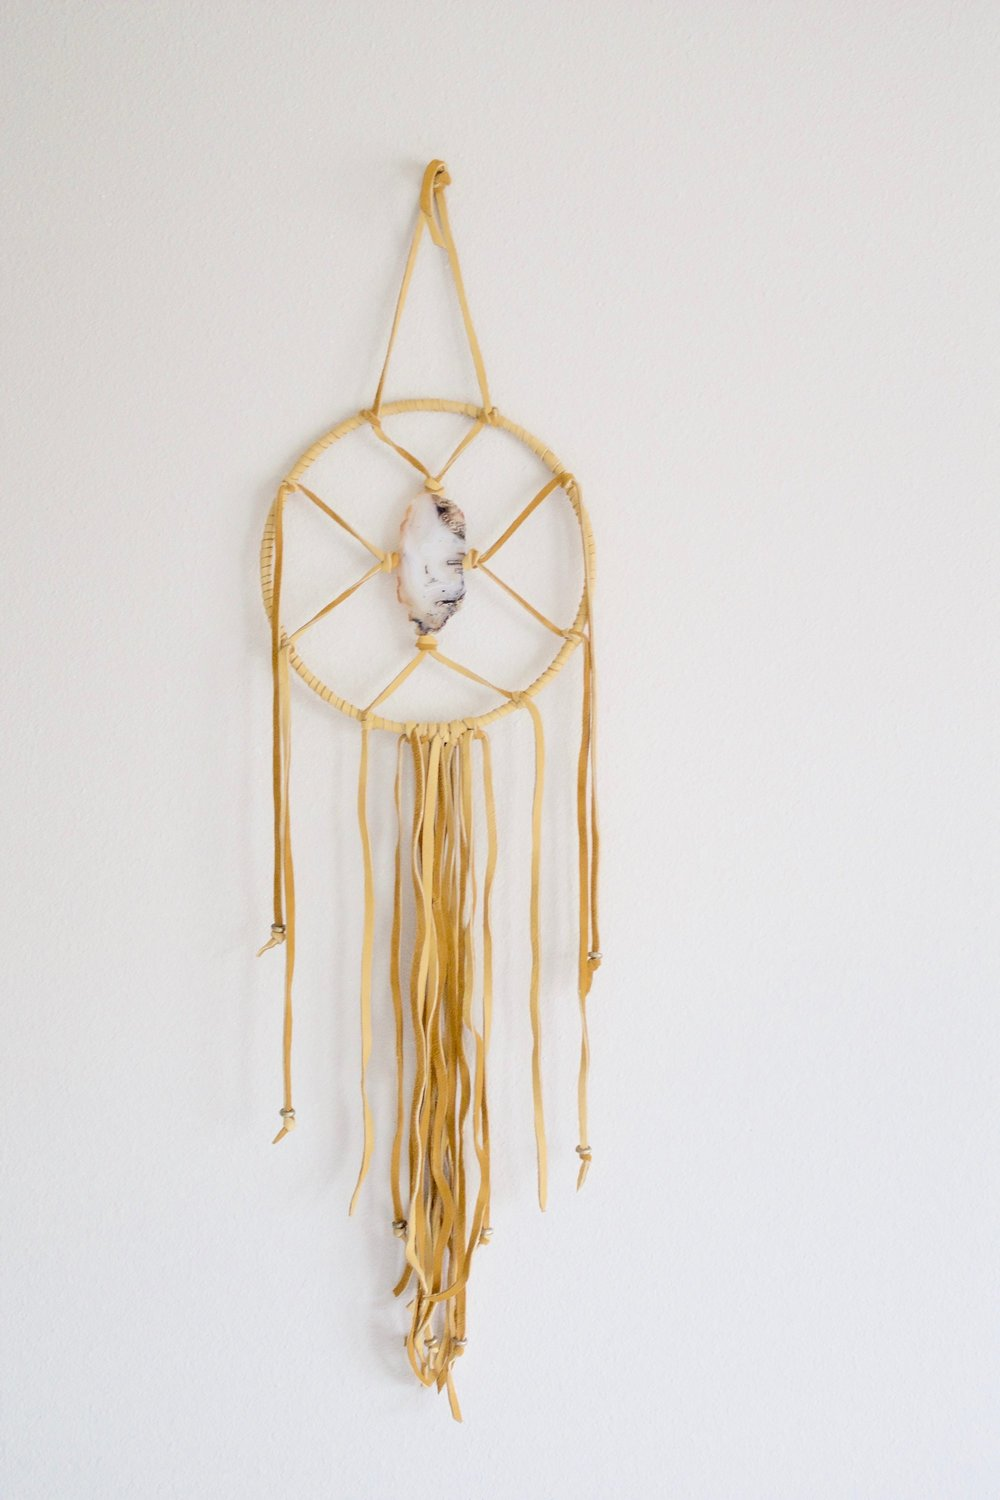 OREGON AGATE DREAMCATCHER -